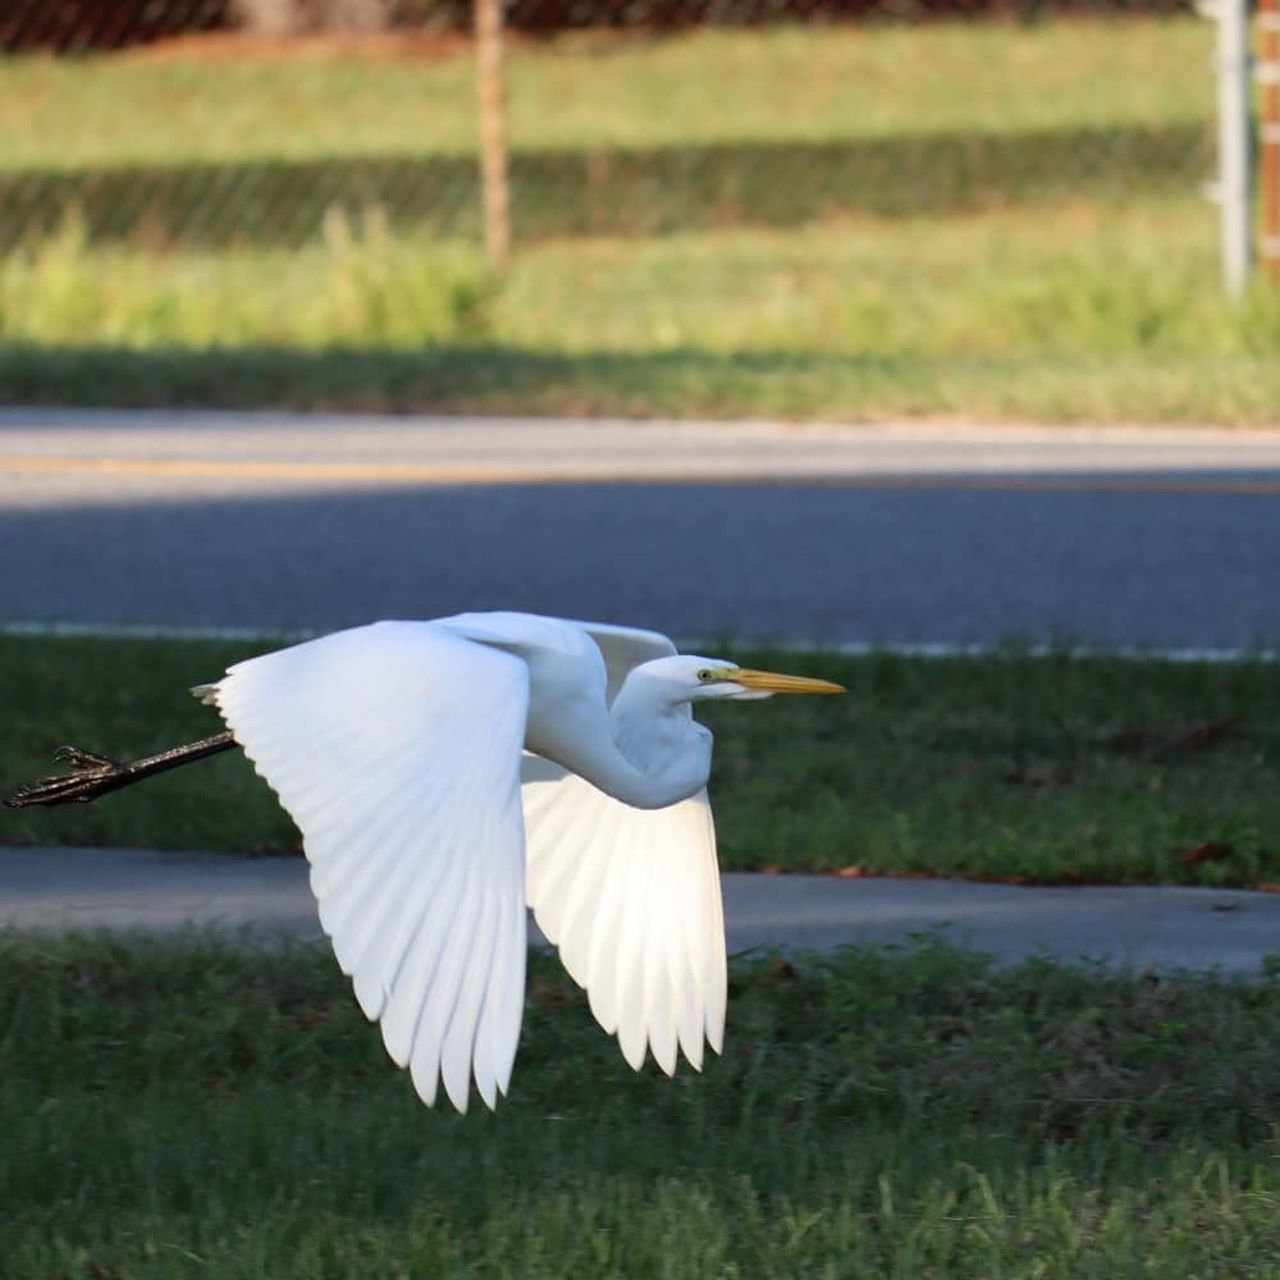 SIDE VIEW OF WHITE BIRD FLYING IN THE GRASS